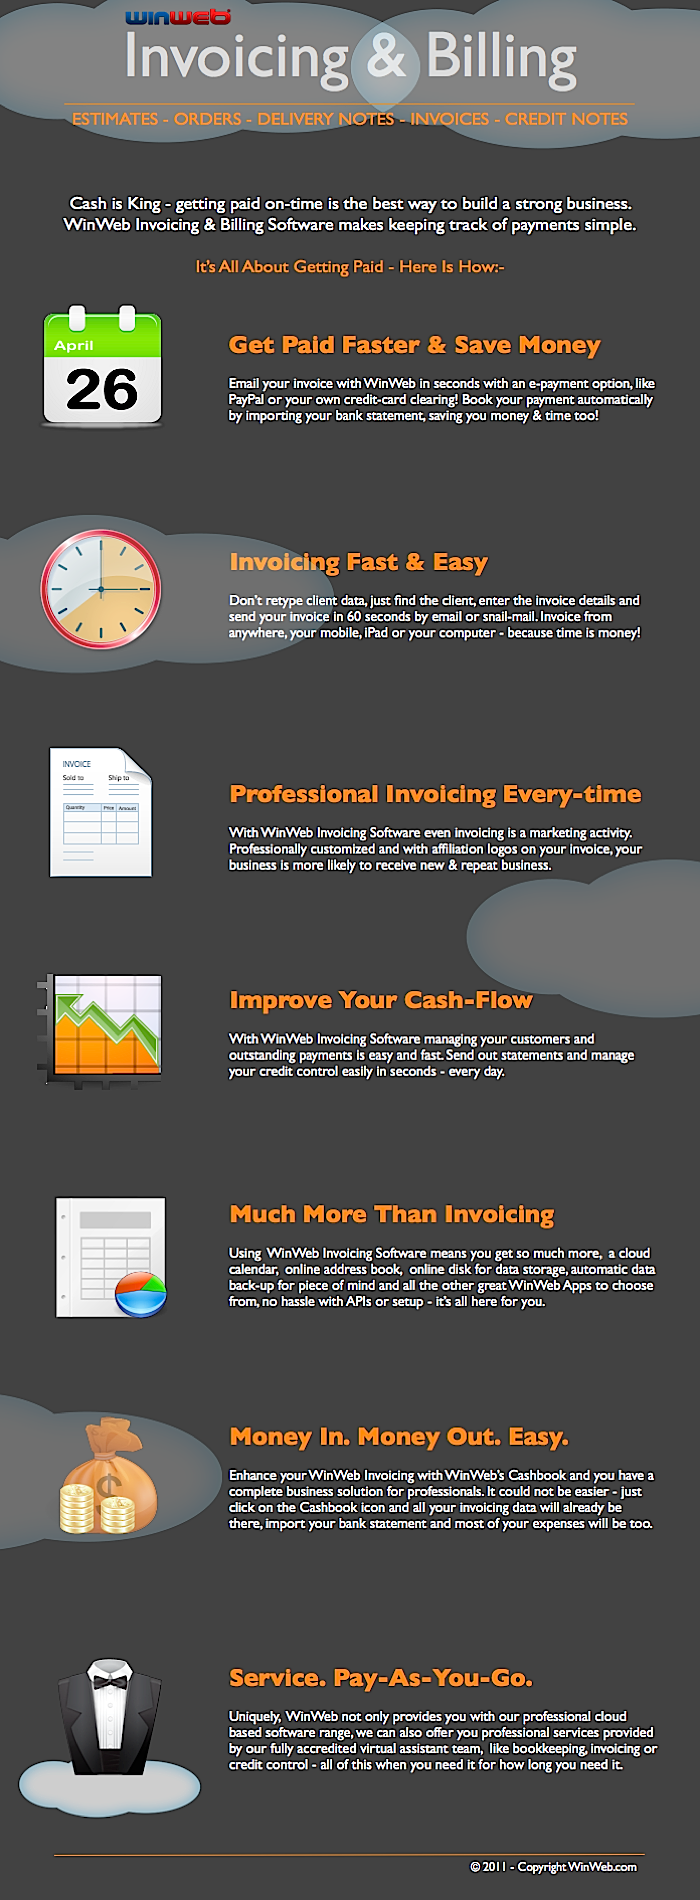 WinWeb | Professional Online Time Invoicing & Billing Software